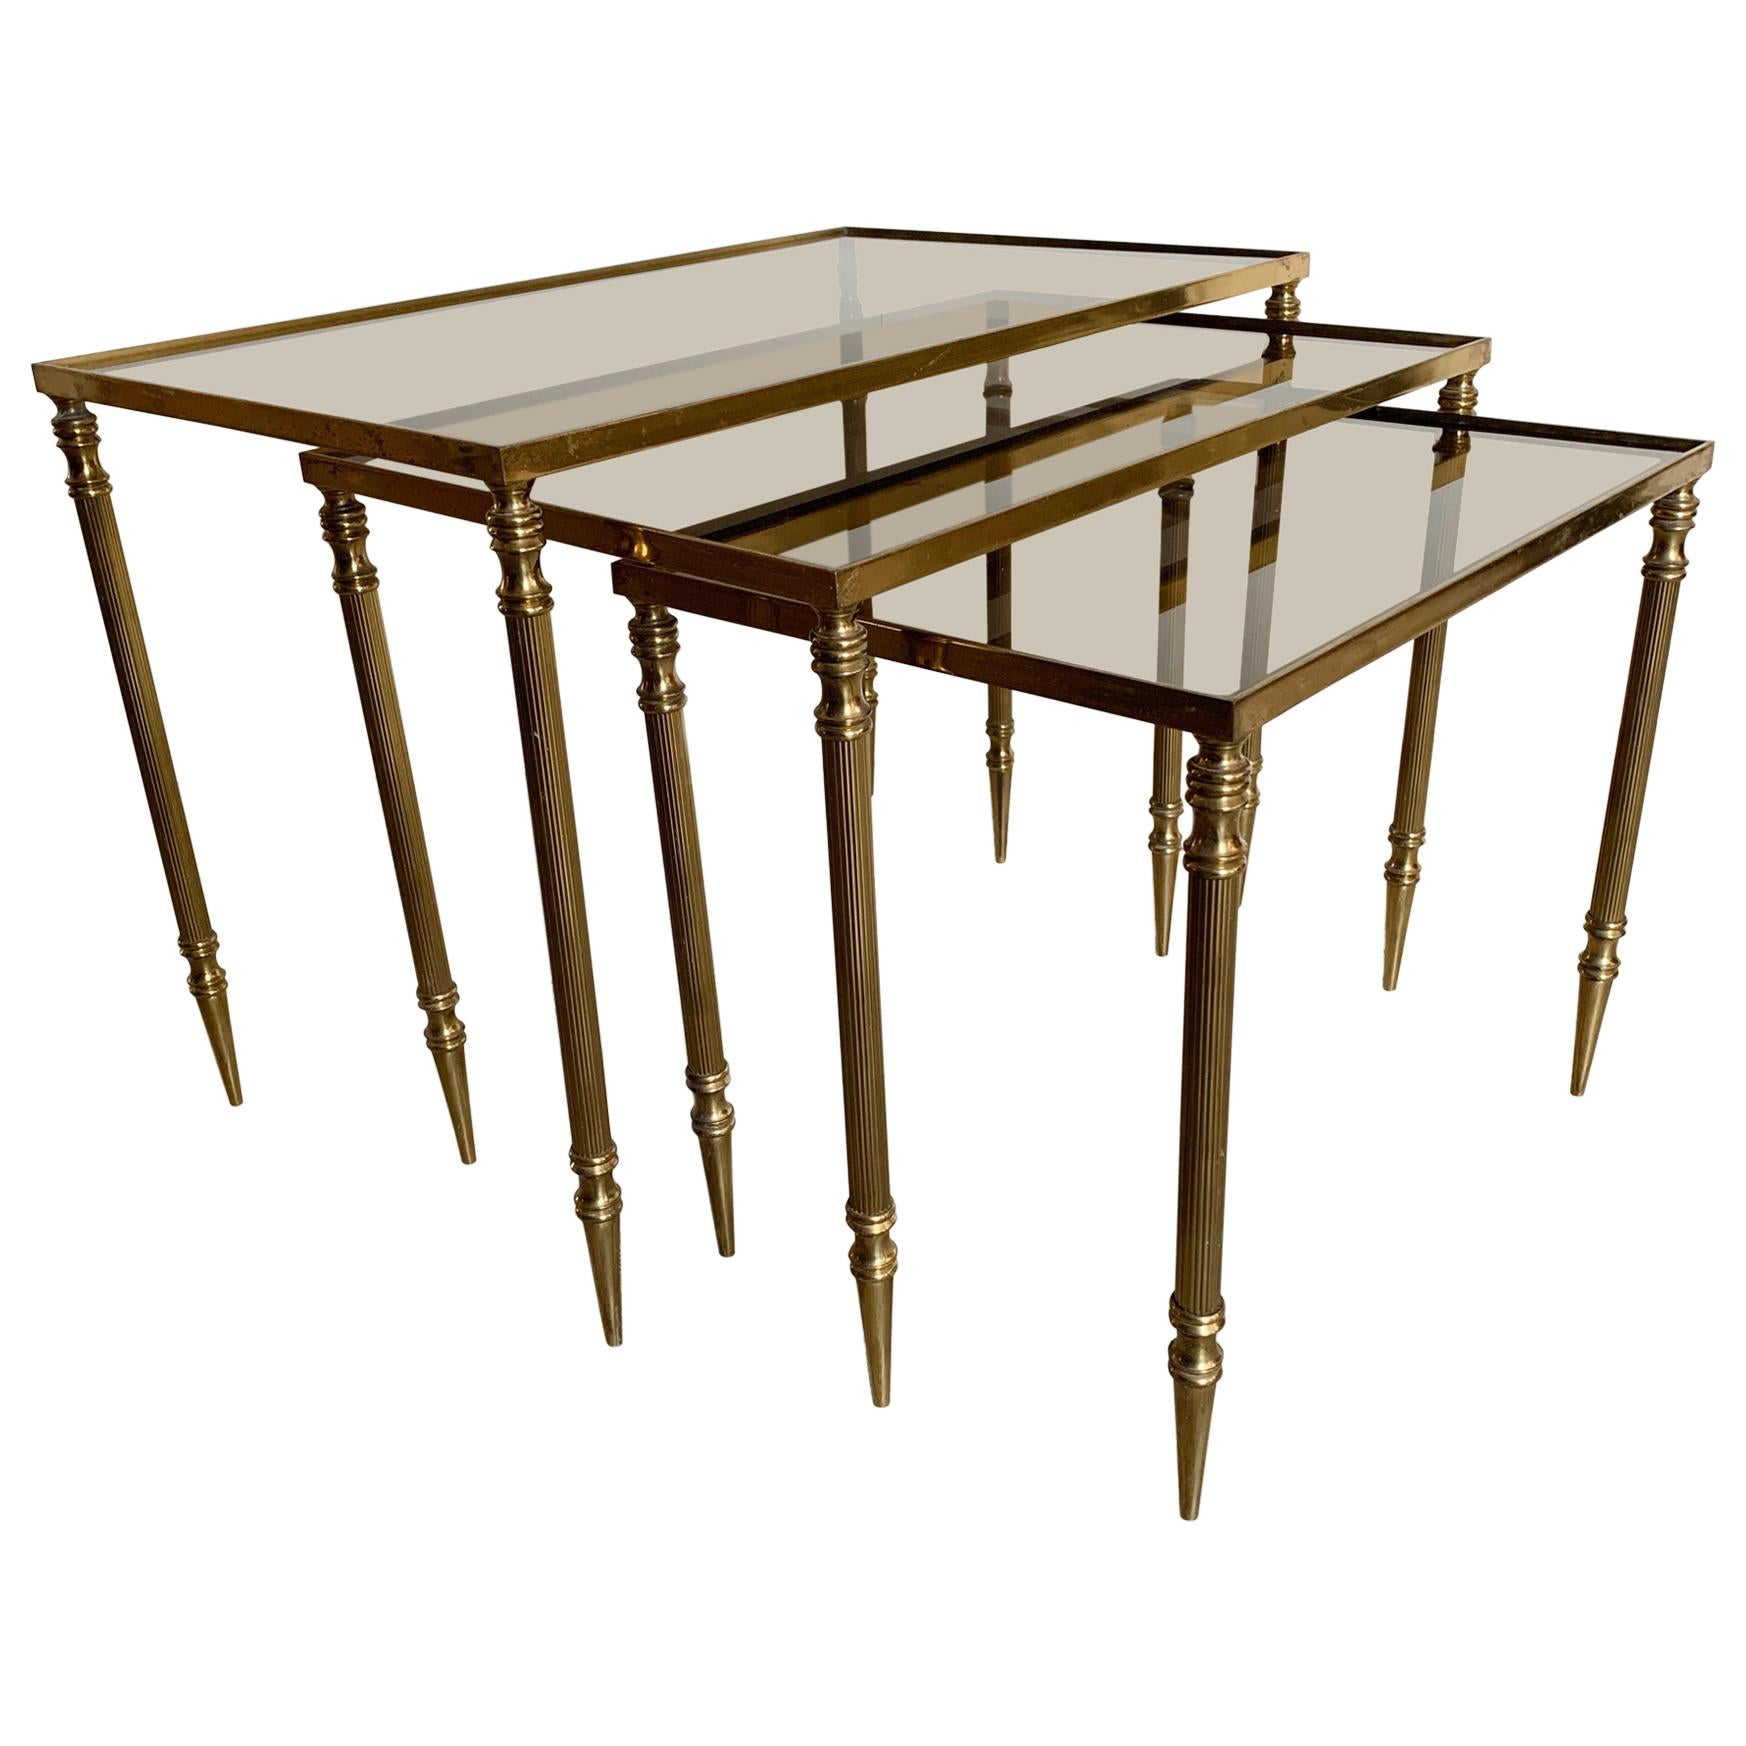 Nesting Tables Attributed to Maison Jansen, circa 1940s